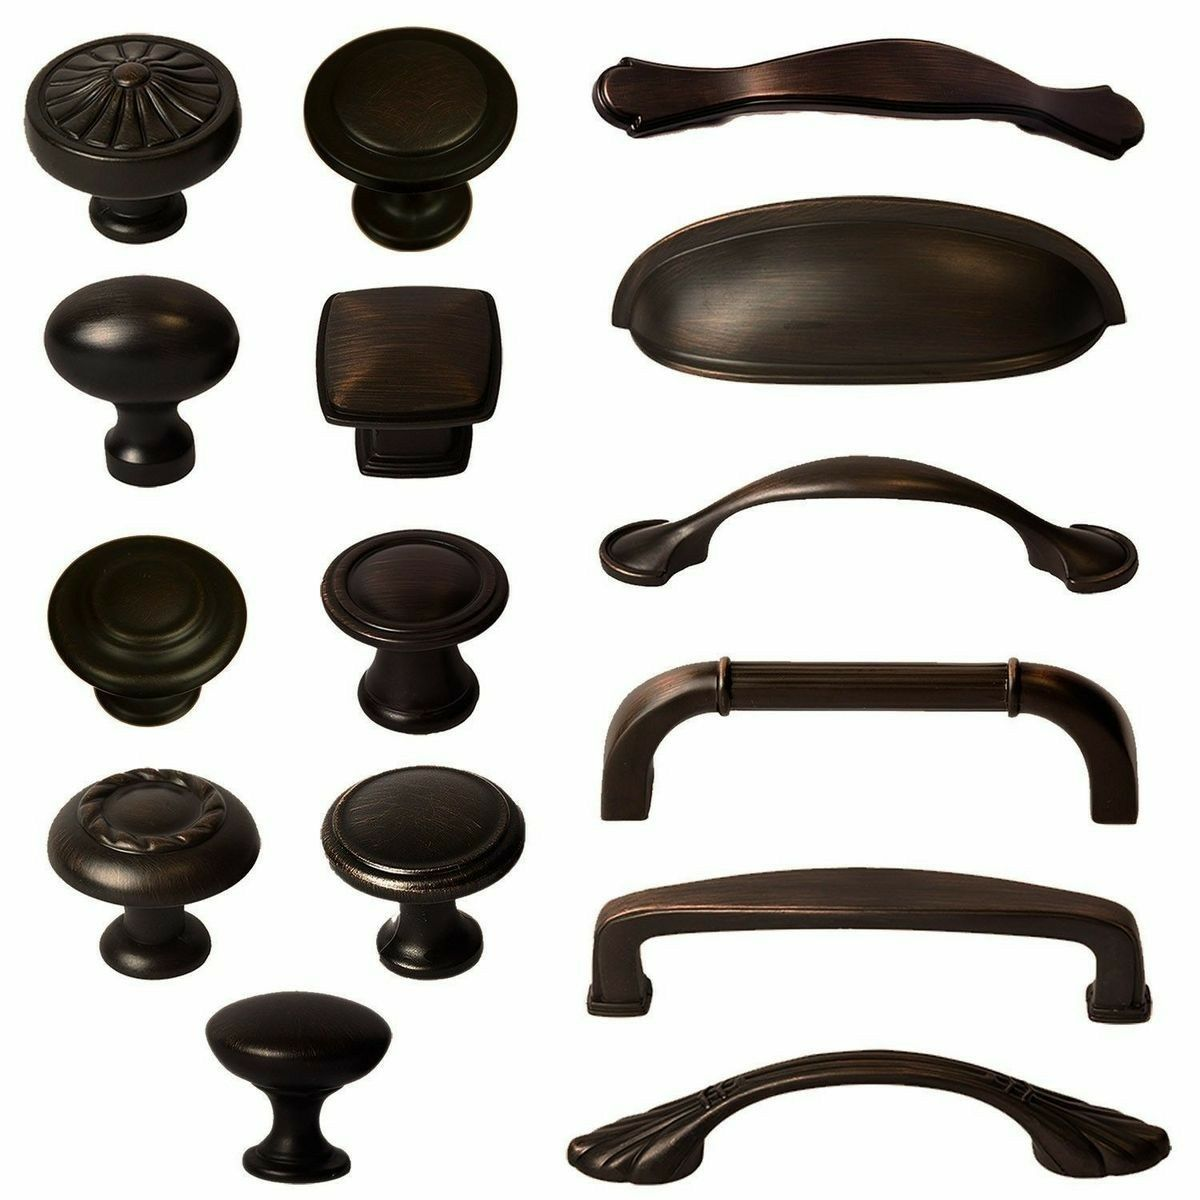 Come shop our knobs&pulls available at all three locations Exeter, Epping and Seabrook.   #hardwear #accessories #bronze #silver #gold #accent #knobs #pulls #dresser #cabinets #kitchen #bathroom #update #new #design #interiordesign #designcenter #interiordecorator #homeowner #homeimprovement #seacoast  #shoplocal #exeter #epping #nh #shopping #project